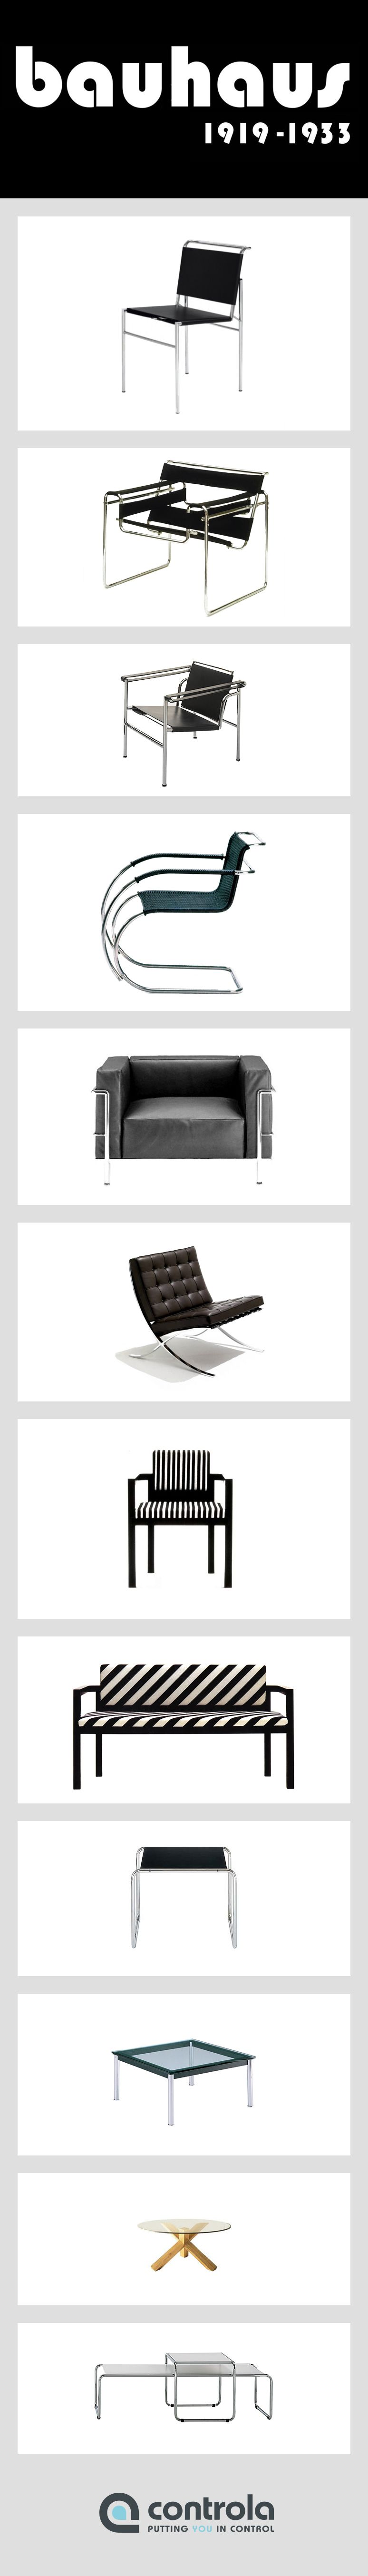 bauhaus klassiker bauhausstil pinterest design bauhaus und architektur. Black Bedroom Furniture Sets. Home Design Ideas